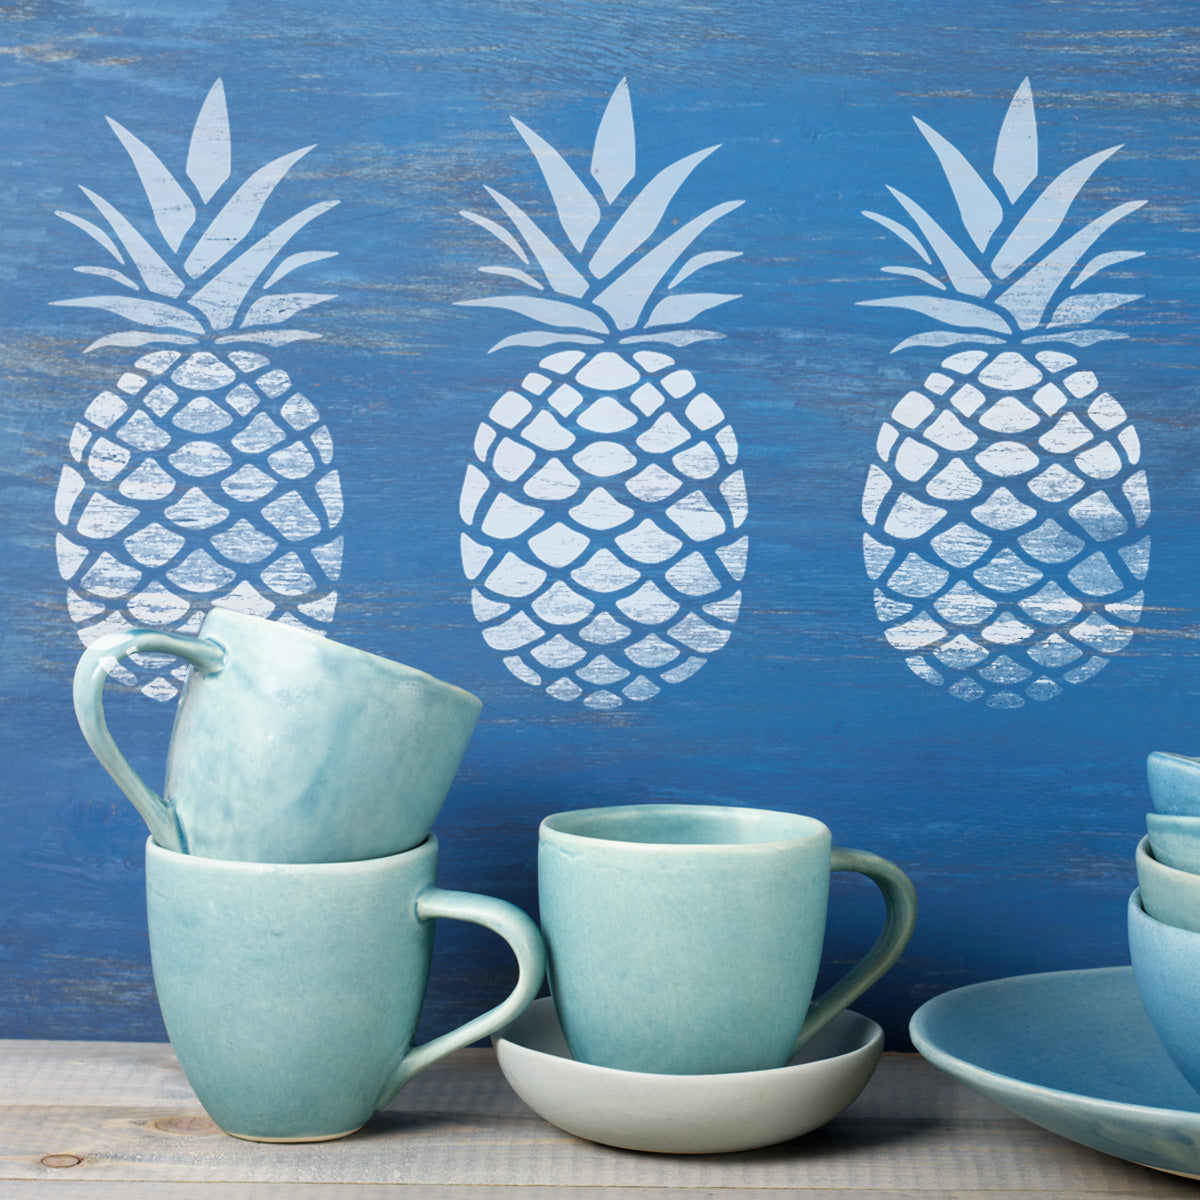 CraftStar Pineapple Stencil in White